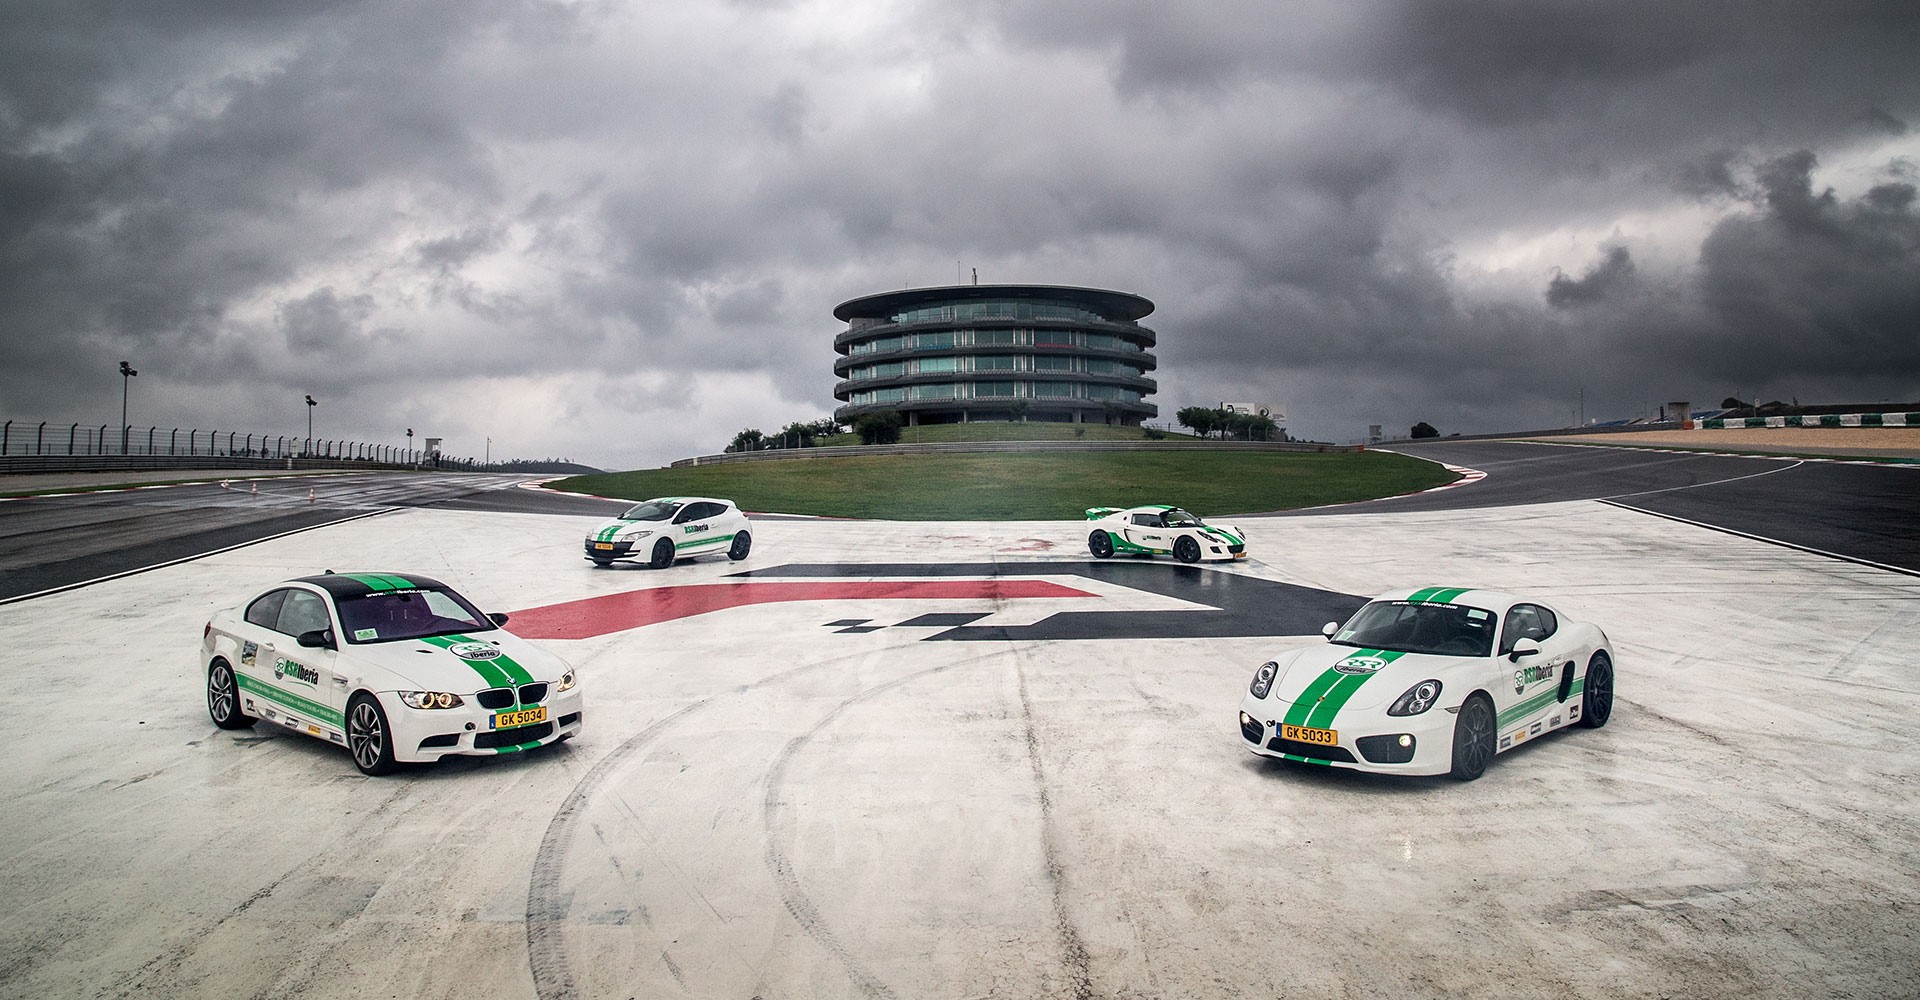 Trackdays at Ascari Race Resort and Circuit Portimao